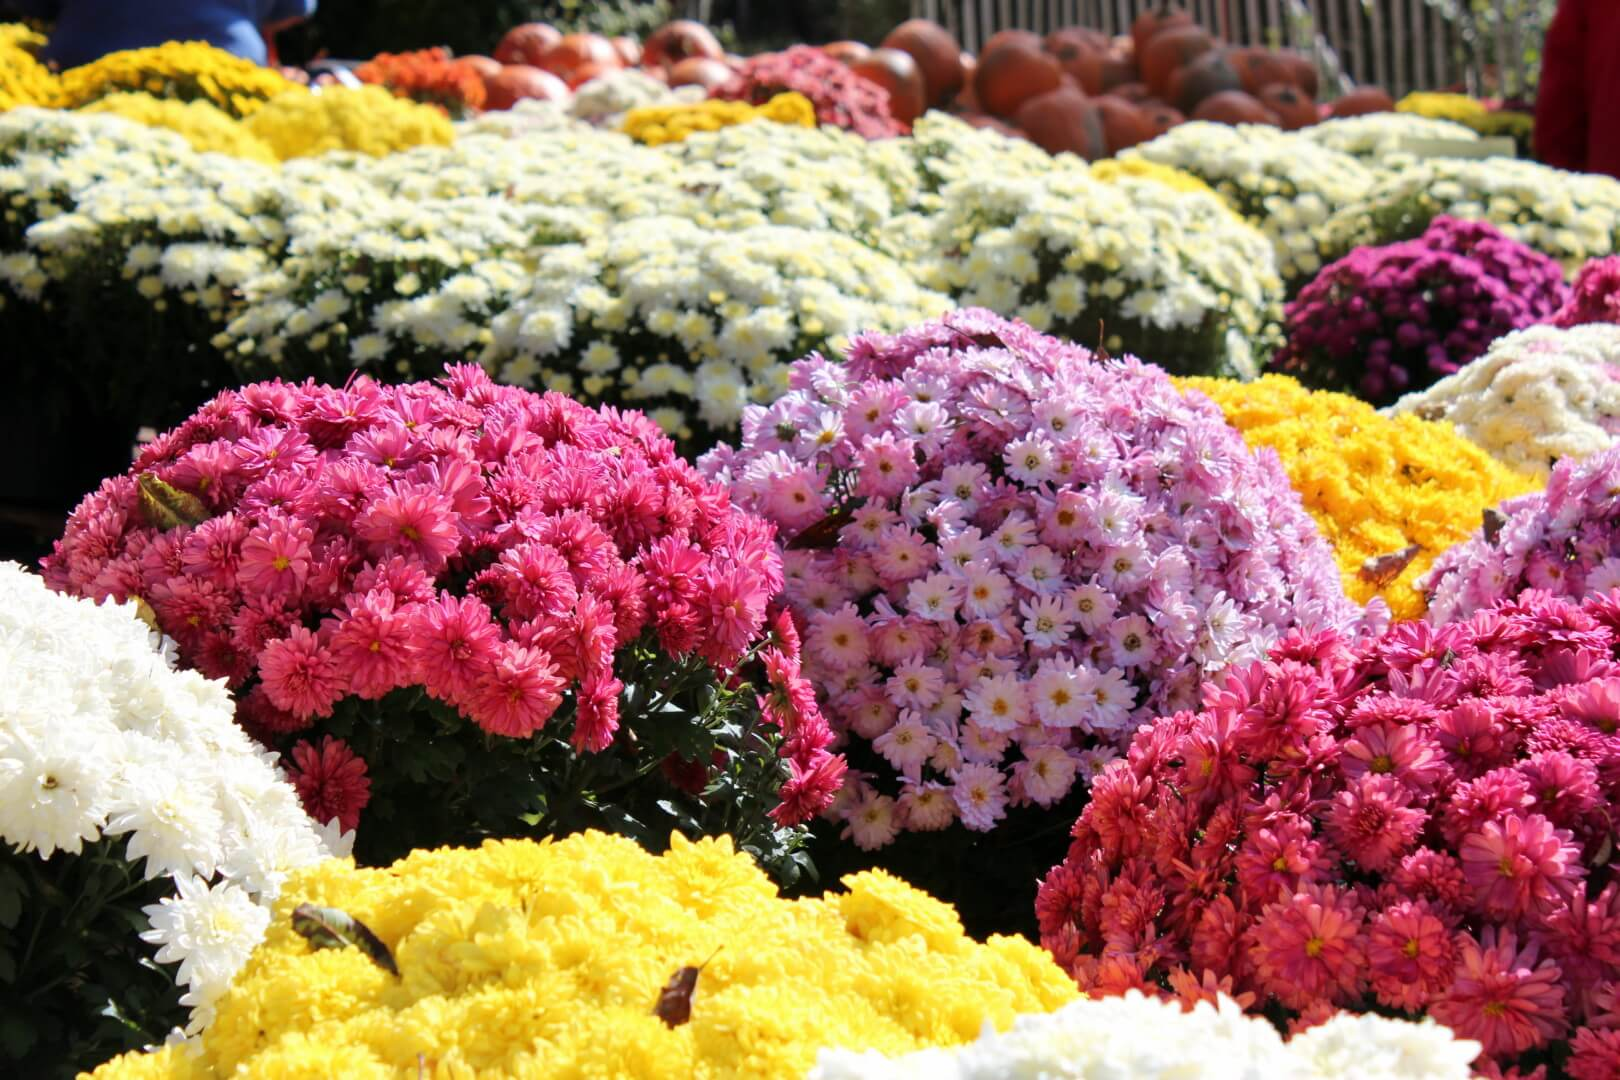 Mums The Word A Guide To Mum Season In Nj Best Of Nj The Best